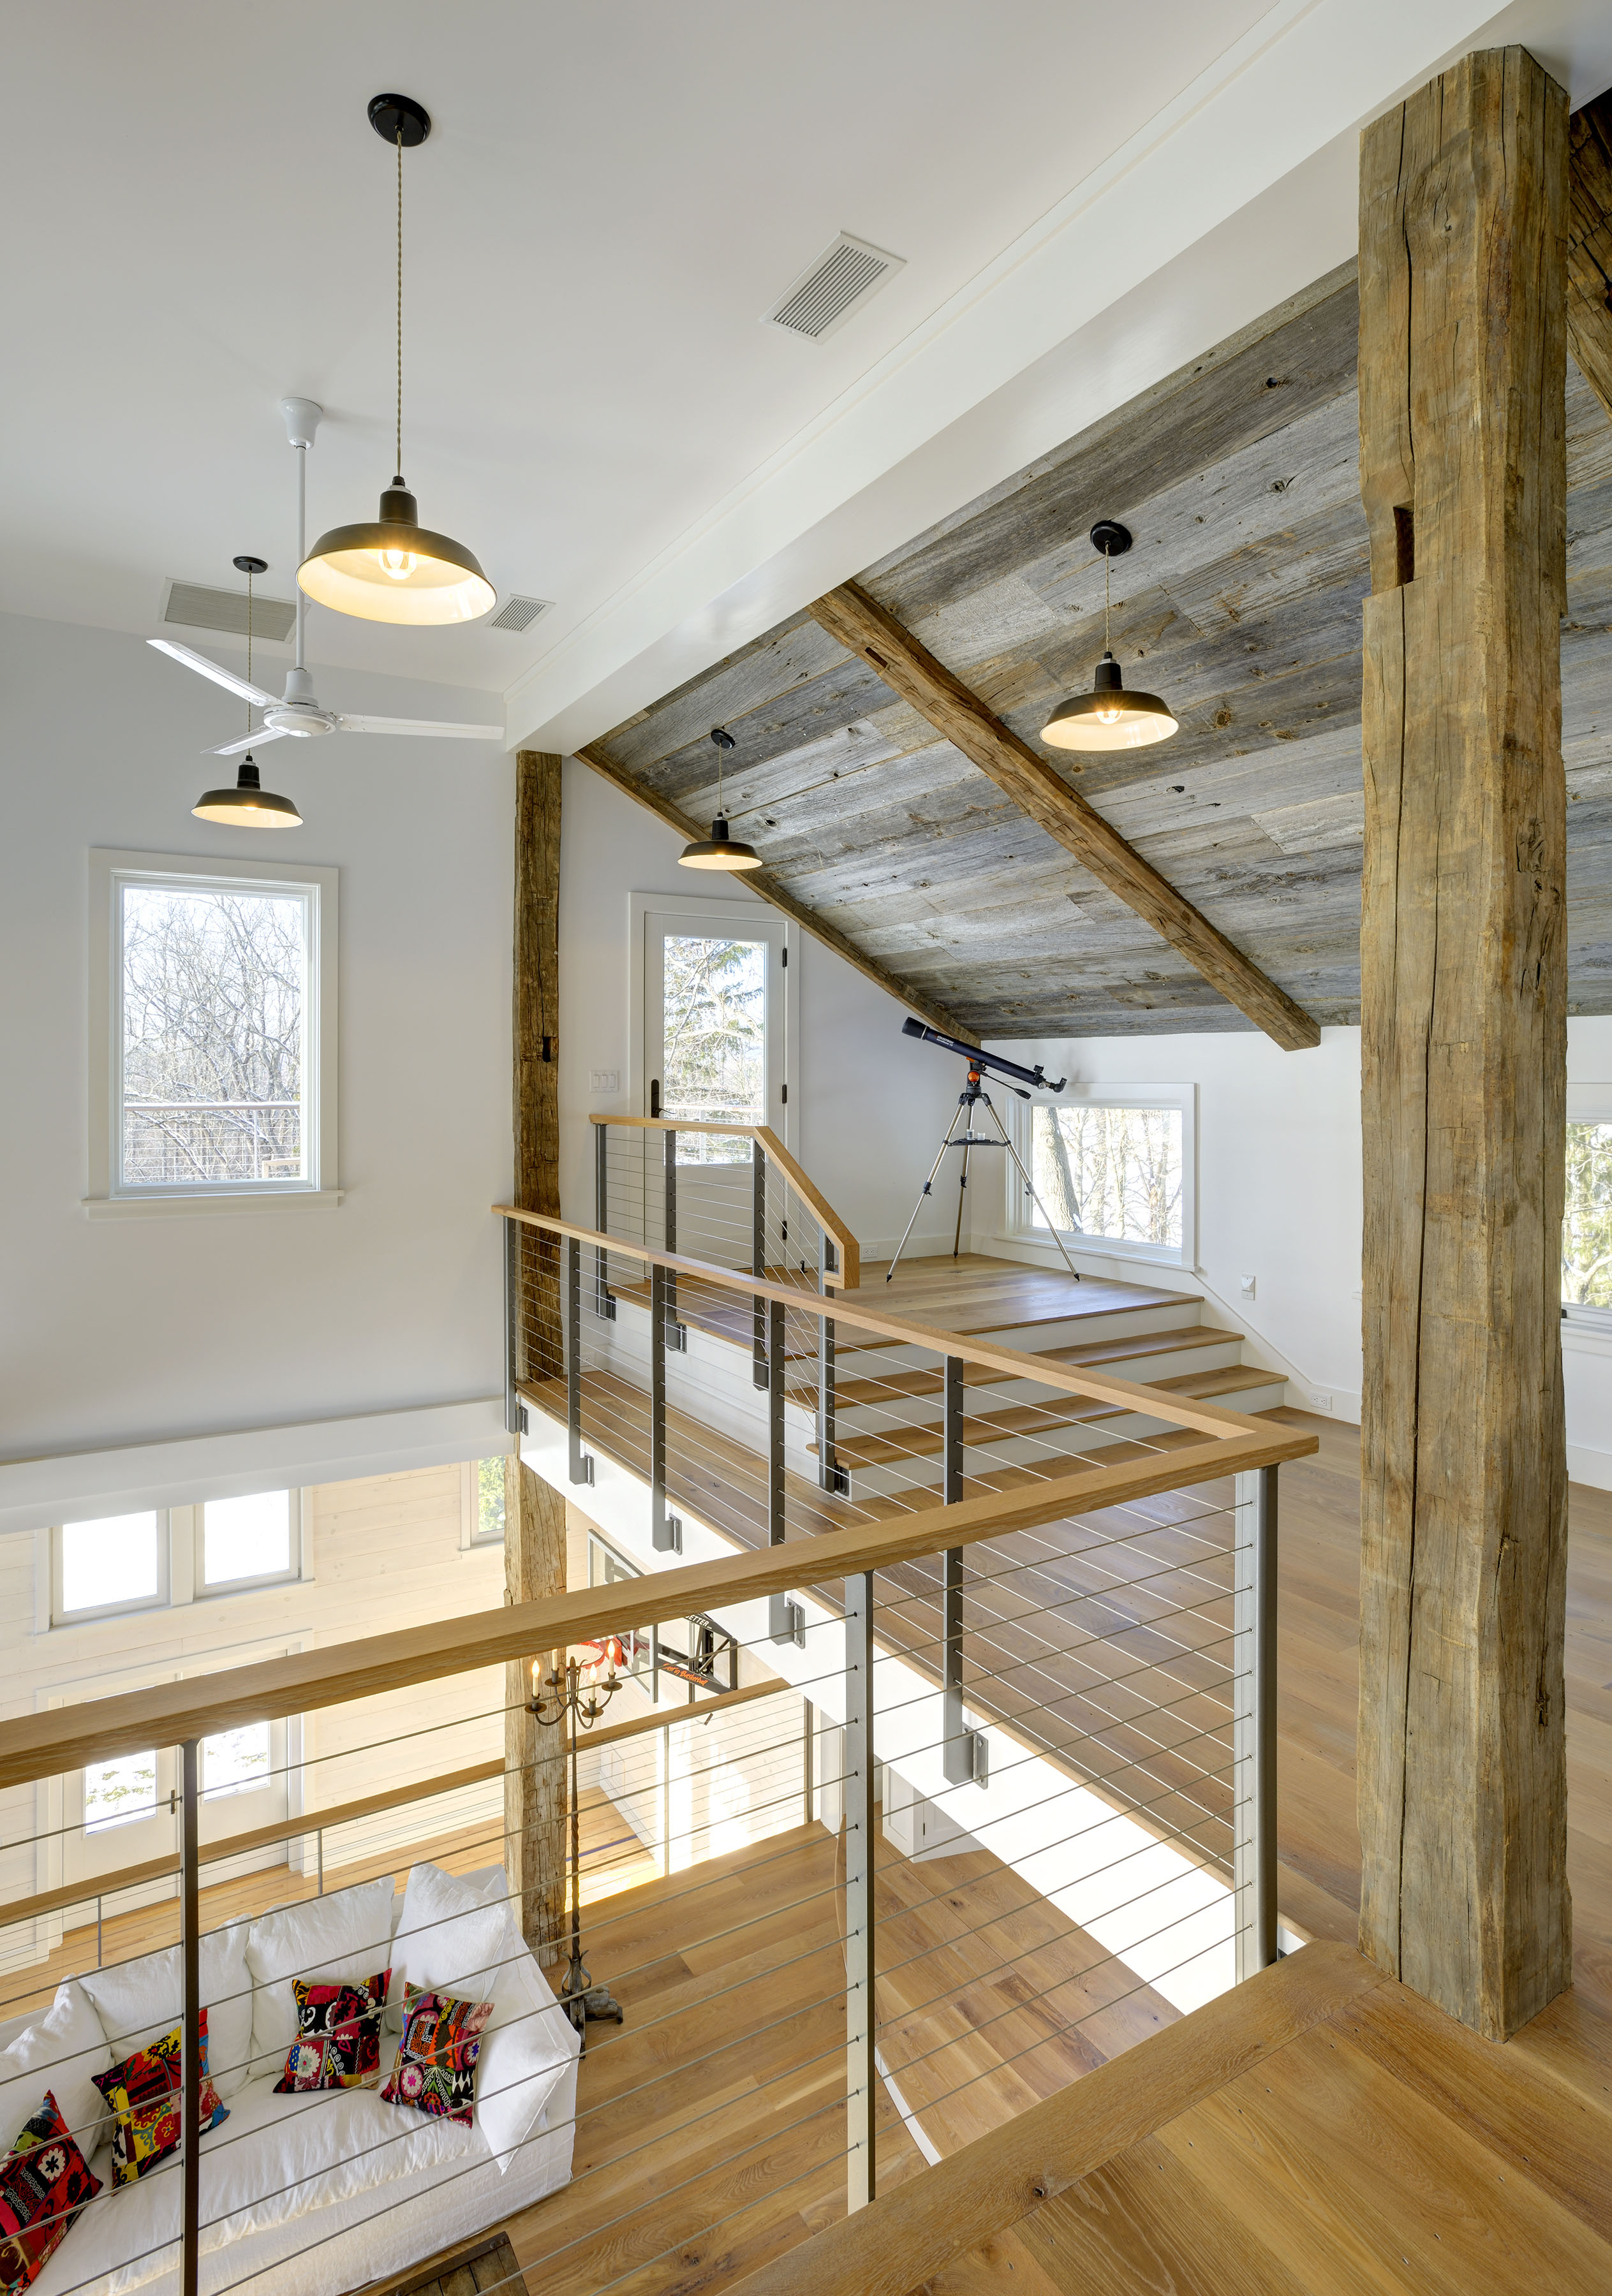 Stainless steel ithaca style cable railing on the loft looking over the living space